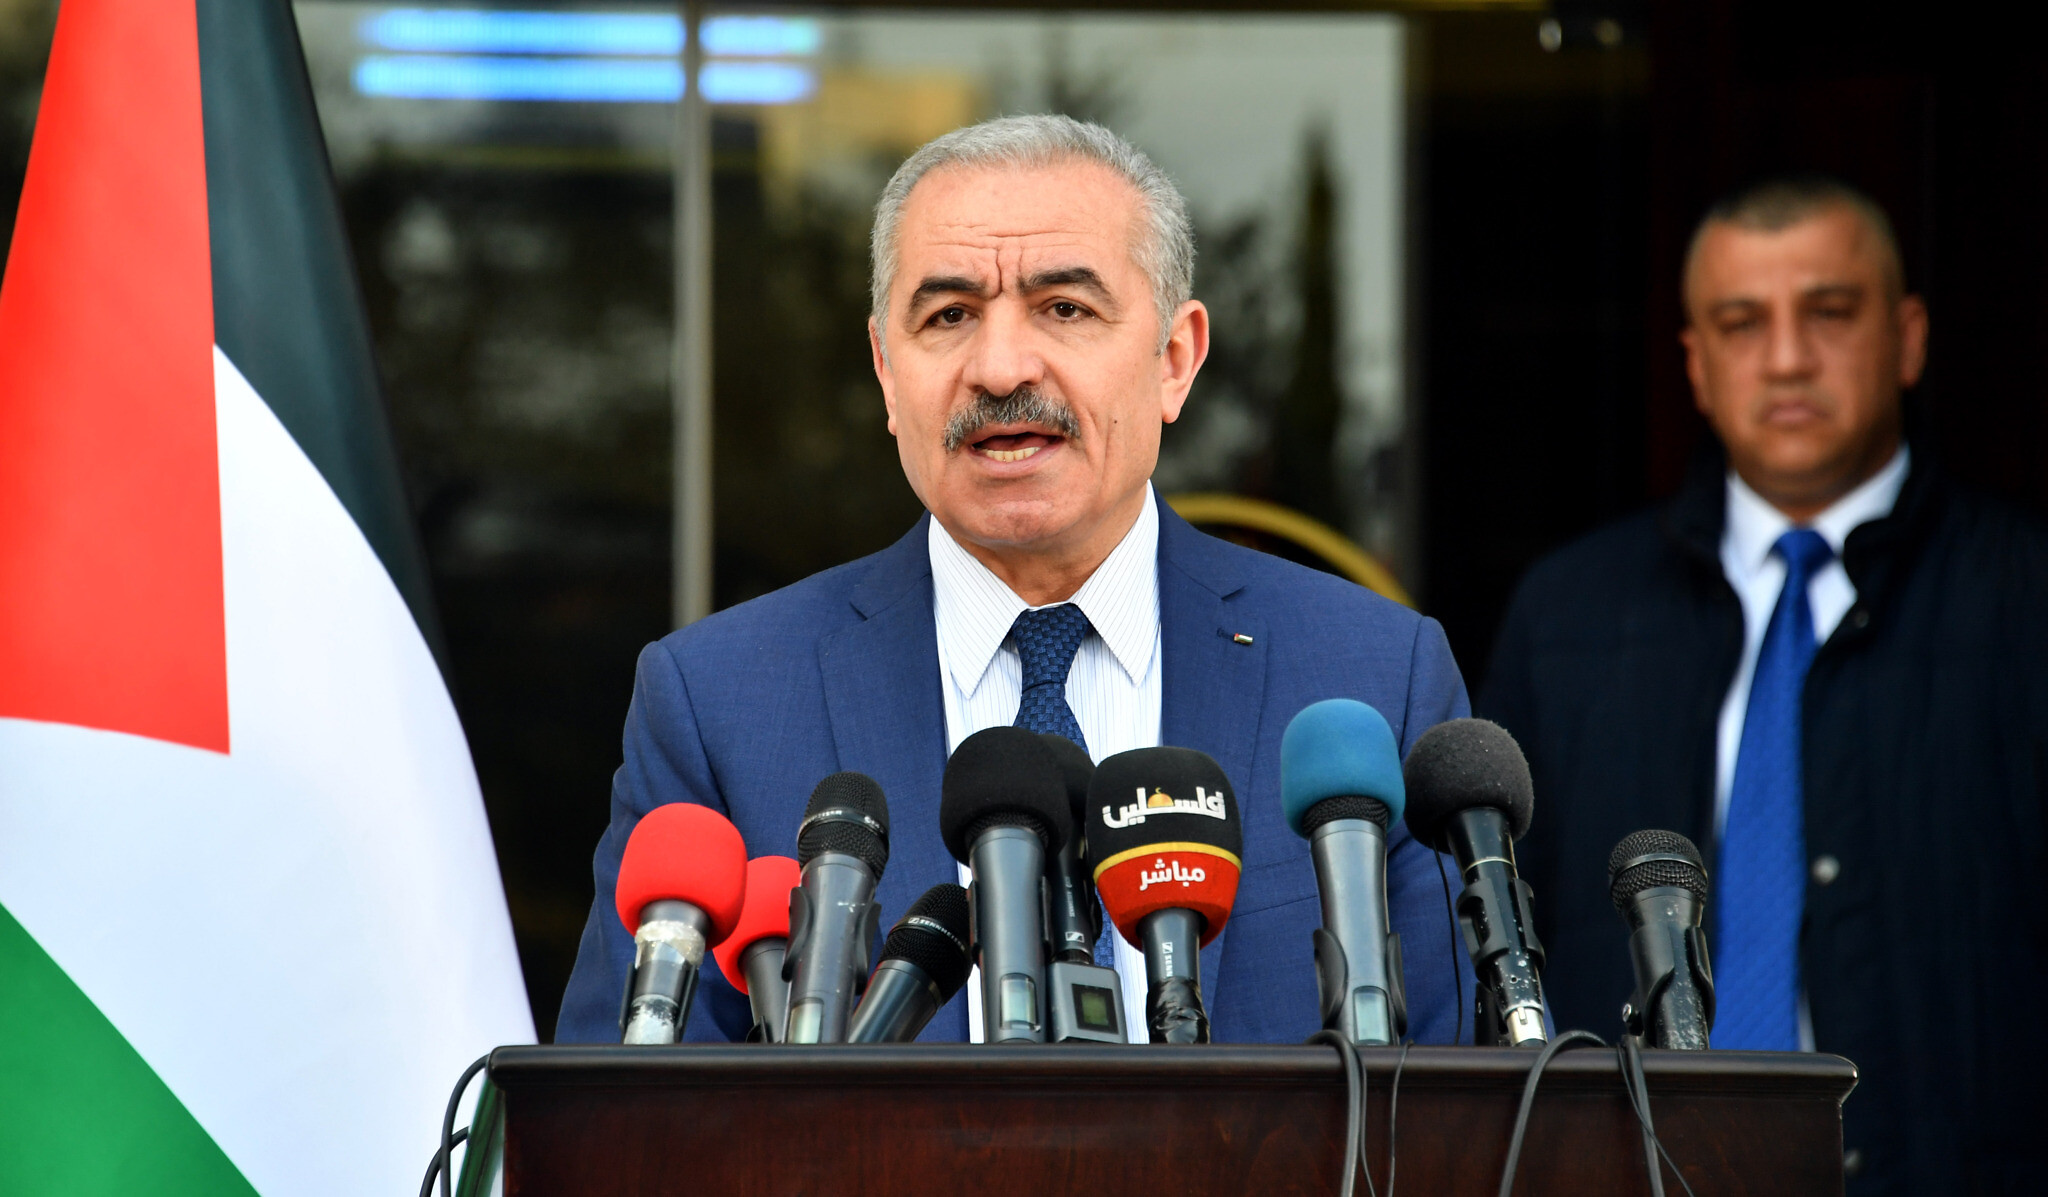 Palestinian PM: Qatar Provides Fundamental Support for Palestinian Cause